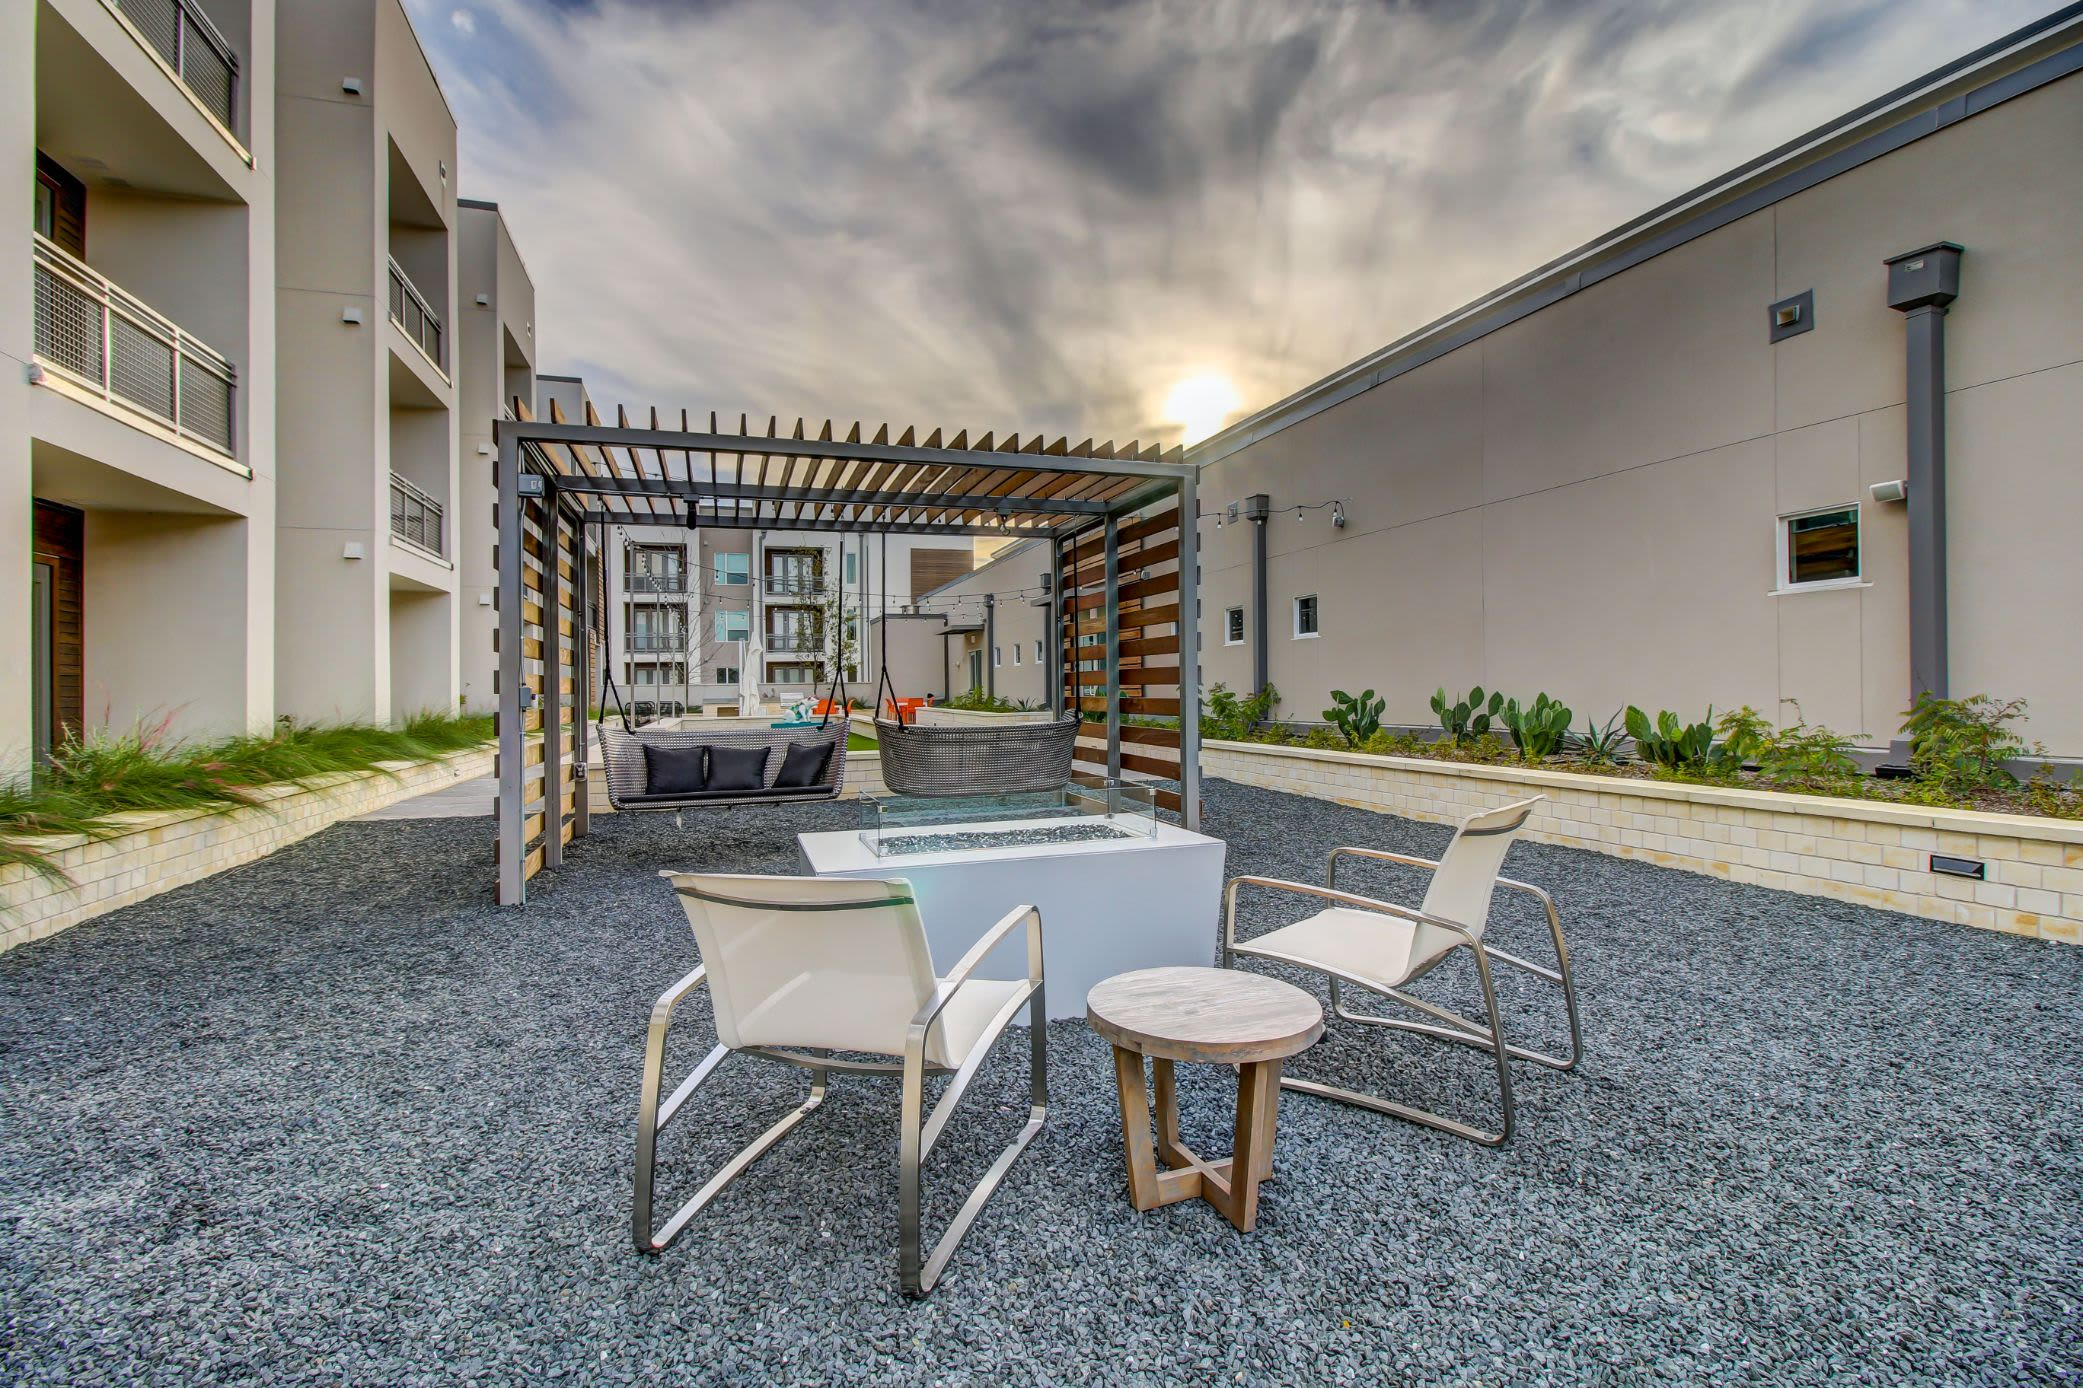 Gravel courtyard with a fire place and swinging chairs at Westerly 360 in Austin, Texas